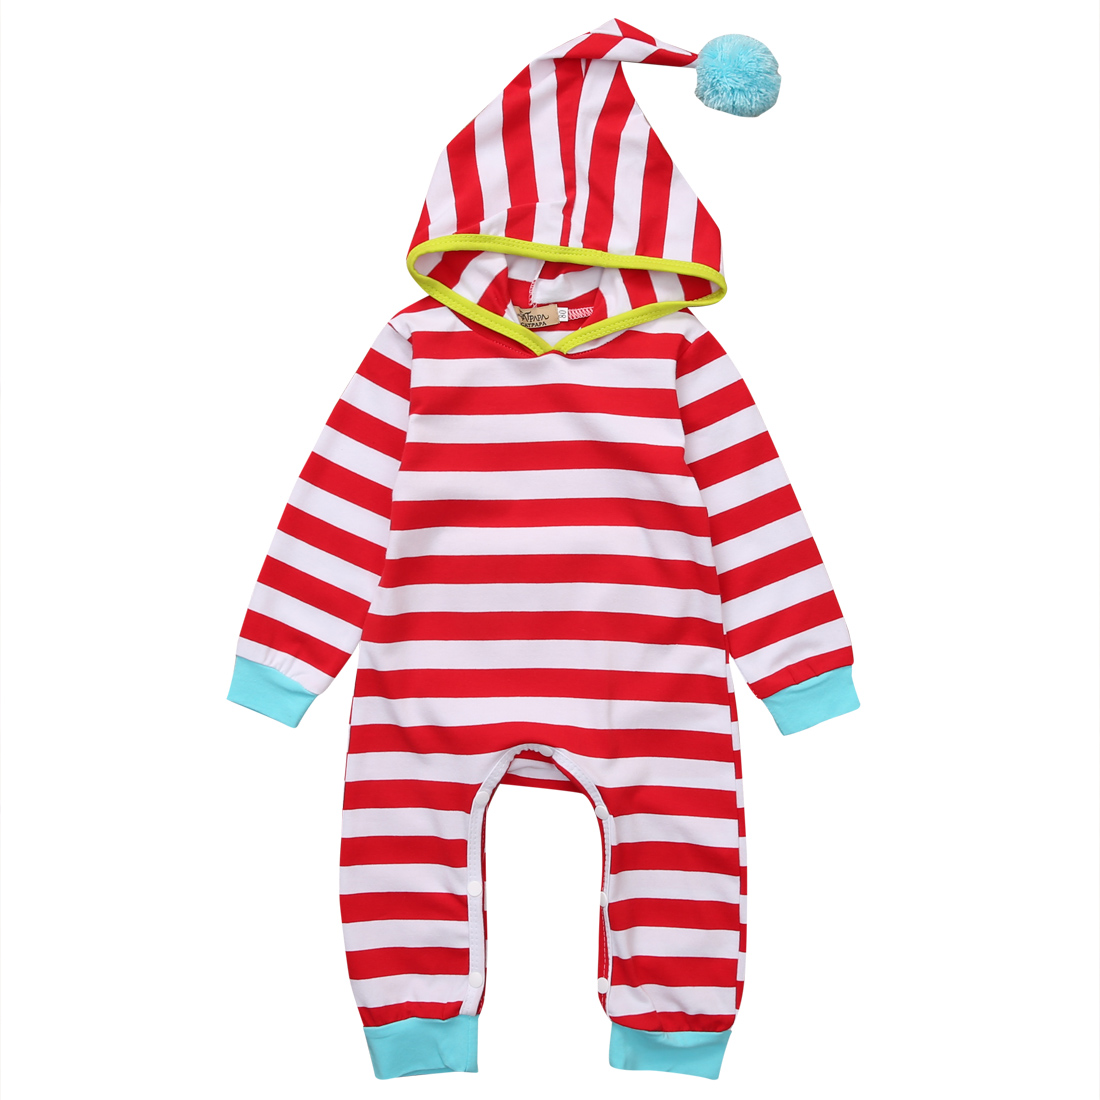 2017 Hot sales Newborn Baby Infant Boy Girl Clothes Long Sleeve Romper Hooded Jumpsuit Outfits Baby Clothing New